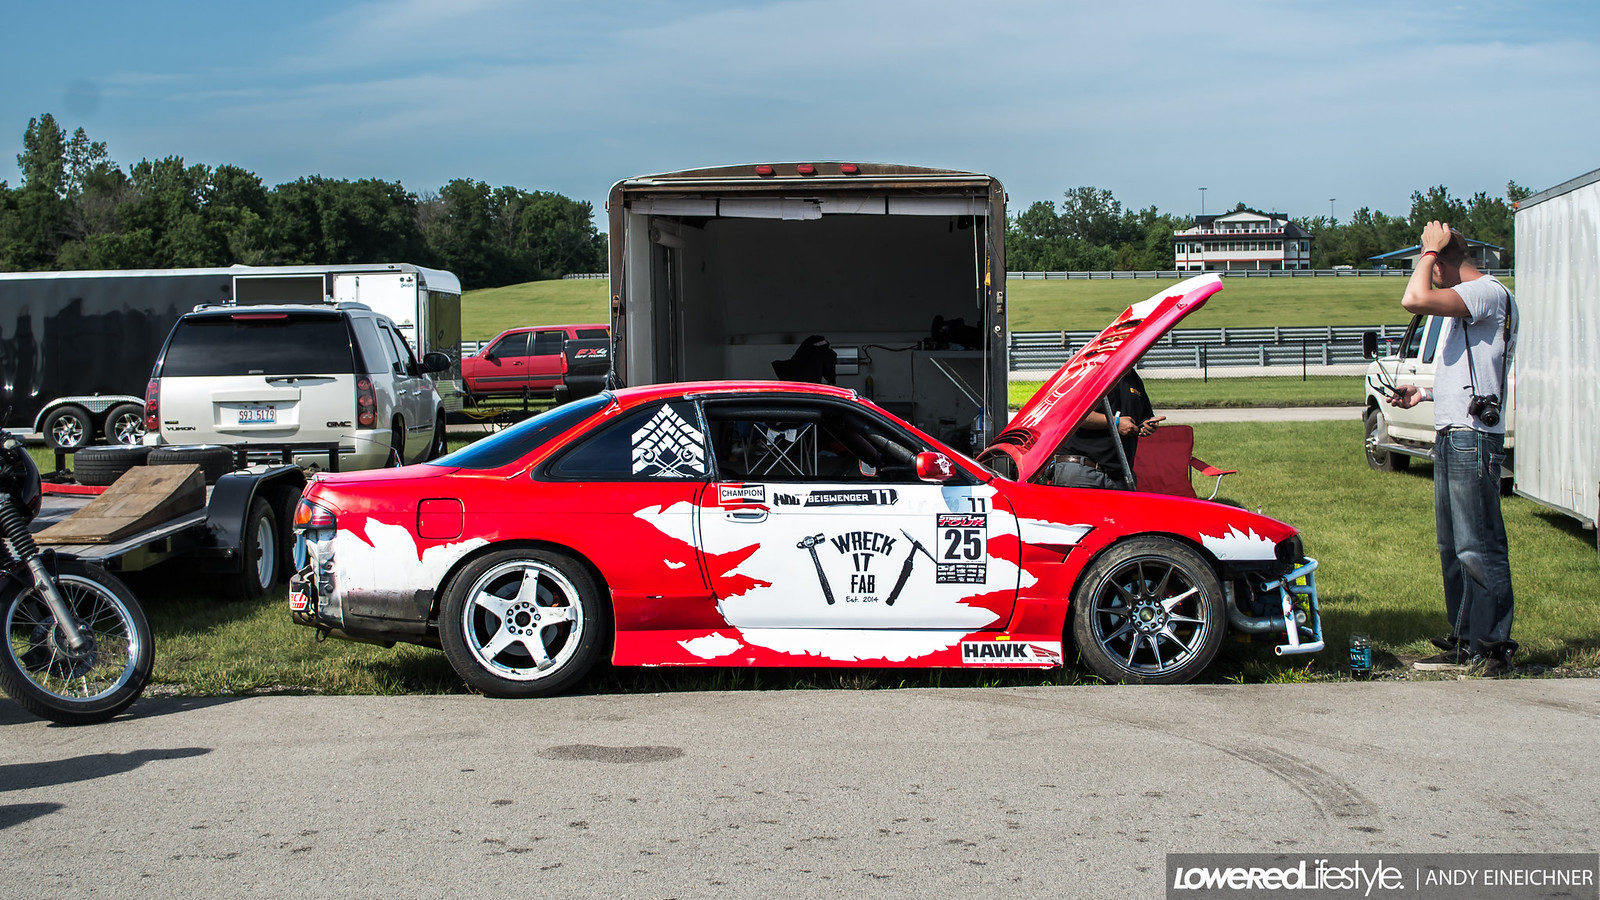 Offset Kings / Gridlife // Photos by: Andy Eineichner